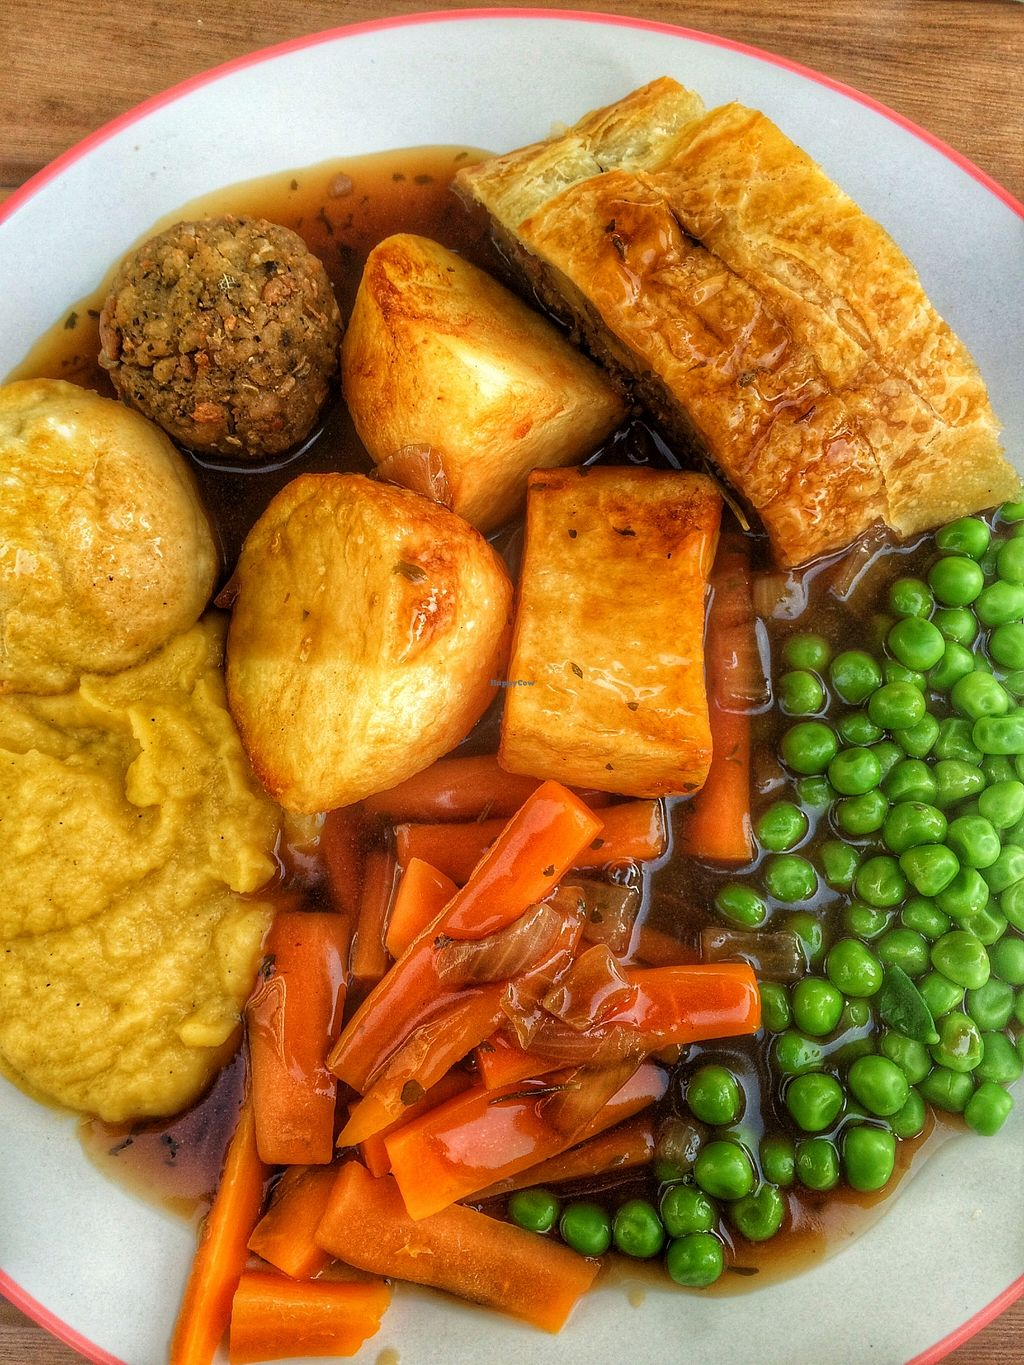 """Photo of Loving Hut Cafe - St Peter's Place  by <a href=""""/members/profile/Edible%20Journey"""">Edible Journey</a> <br/>Sunday nut roast at the Loving Hut, The Level Brighton <br/> October 26, 2015  - <a href='/contact/abuse/image/58717/122720'>Report</a>"""